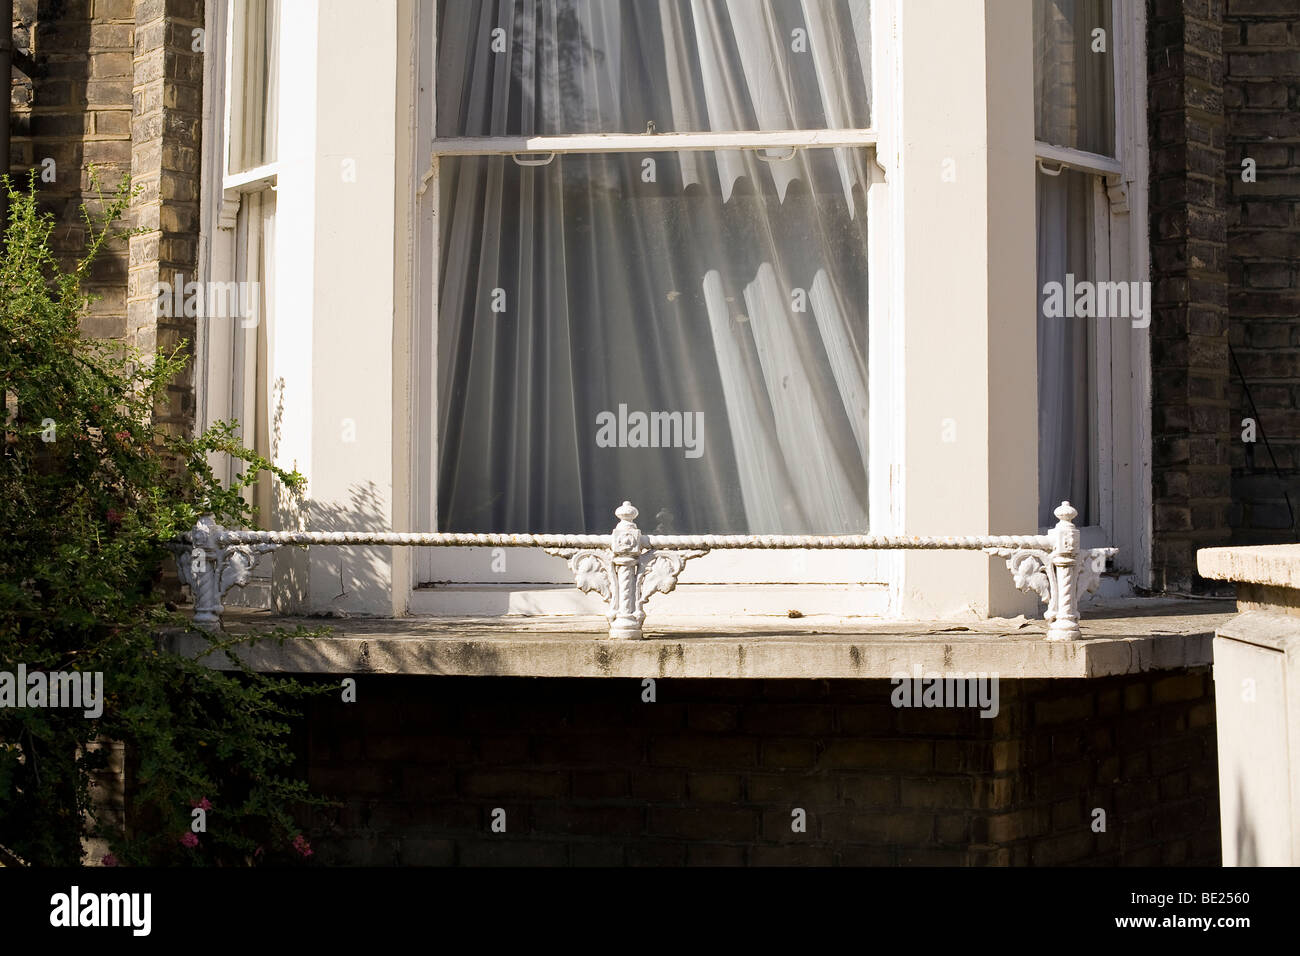 bay window with net curtains in sunshine - Stock Image